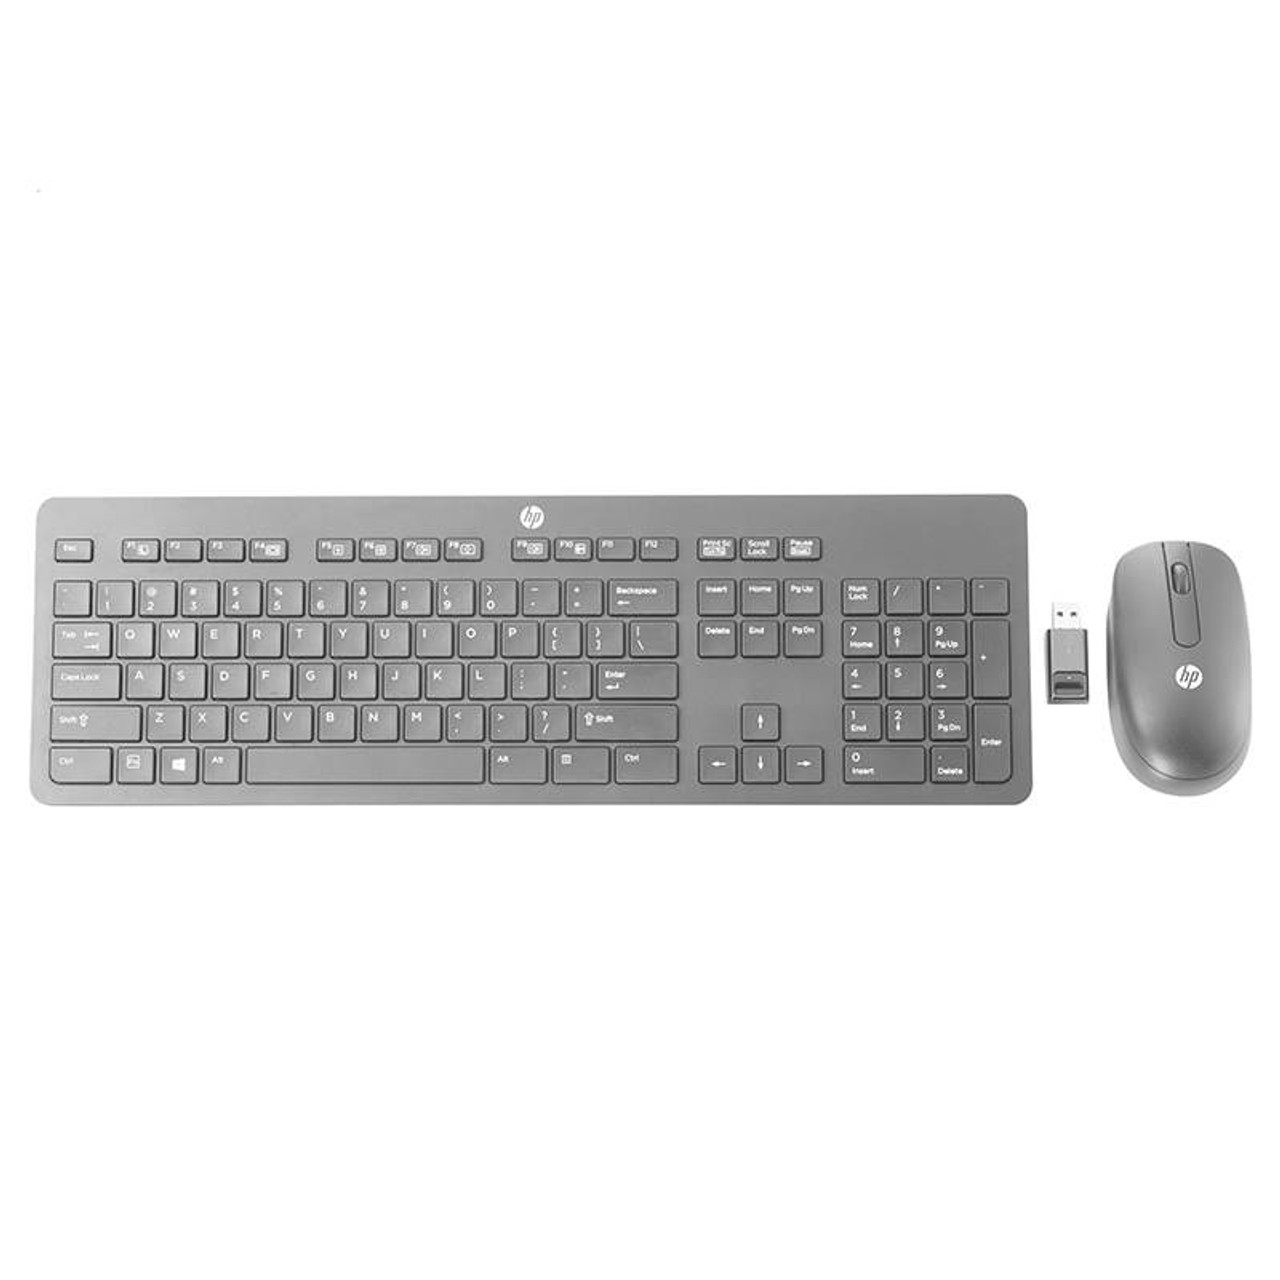 Product image for HP Slim Wireless Keyboard and Mouse Combo - T6L04AA   CX Computer Superstore